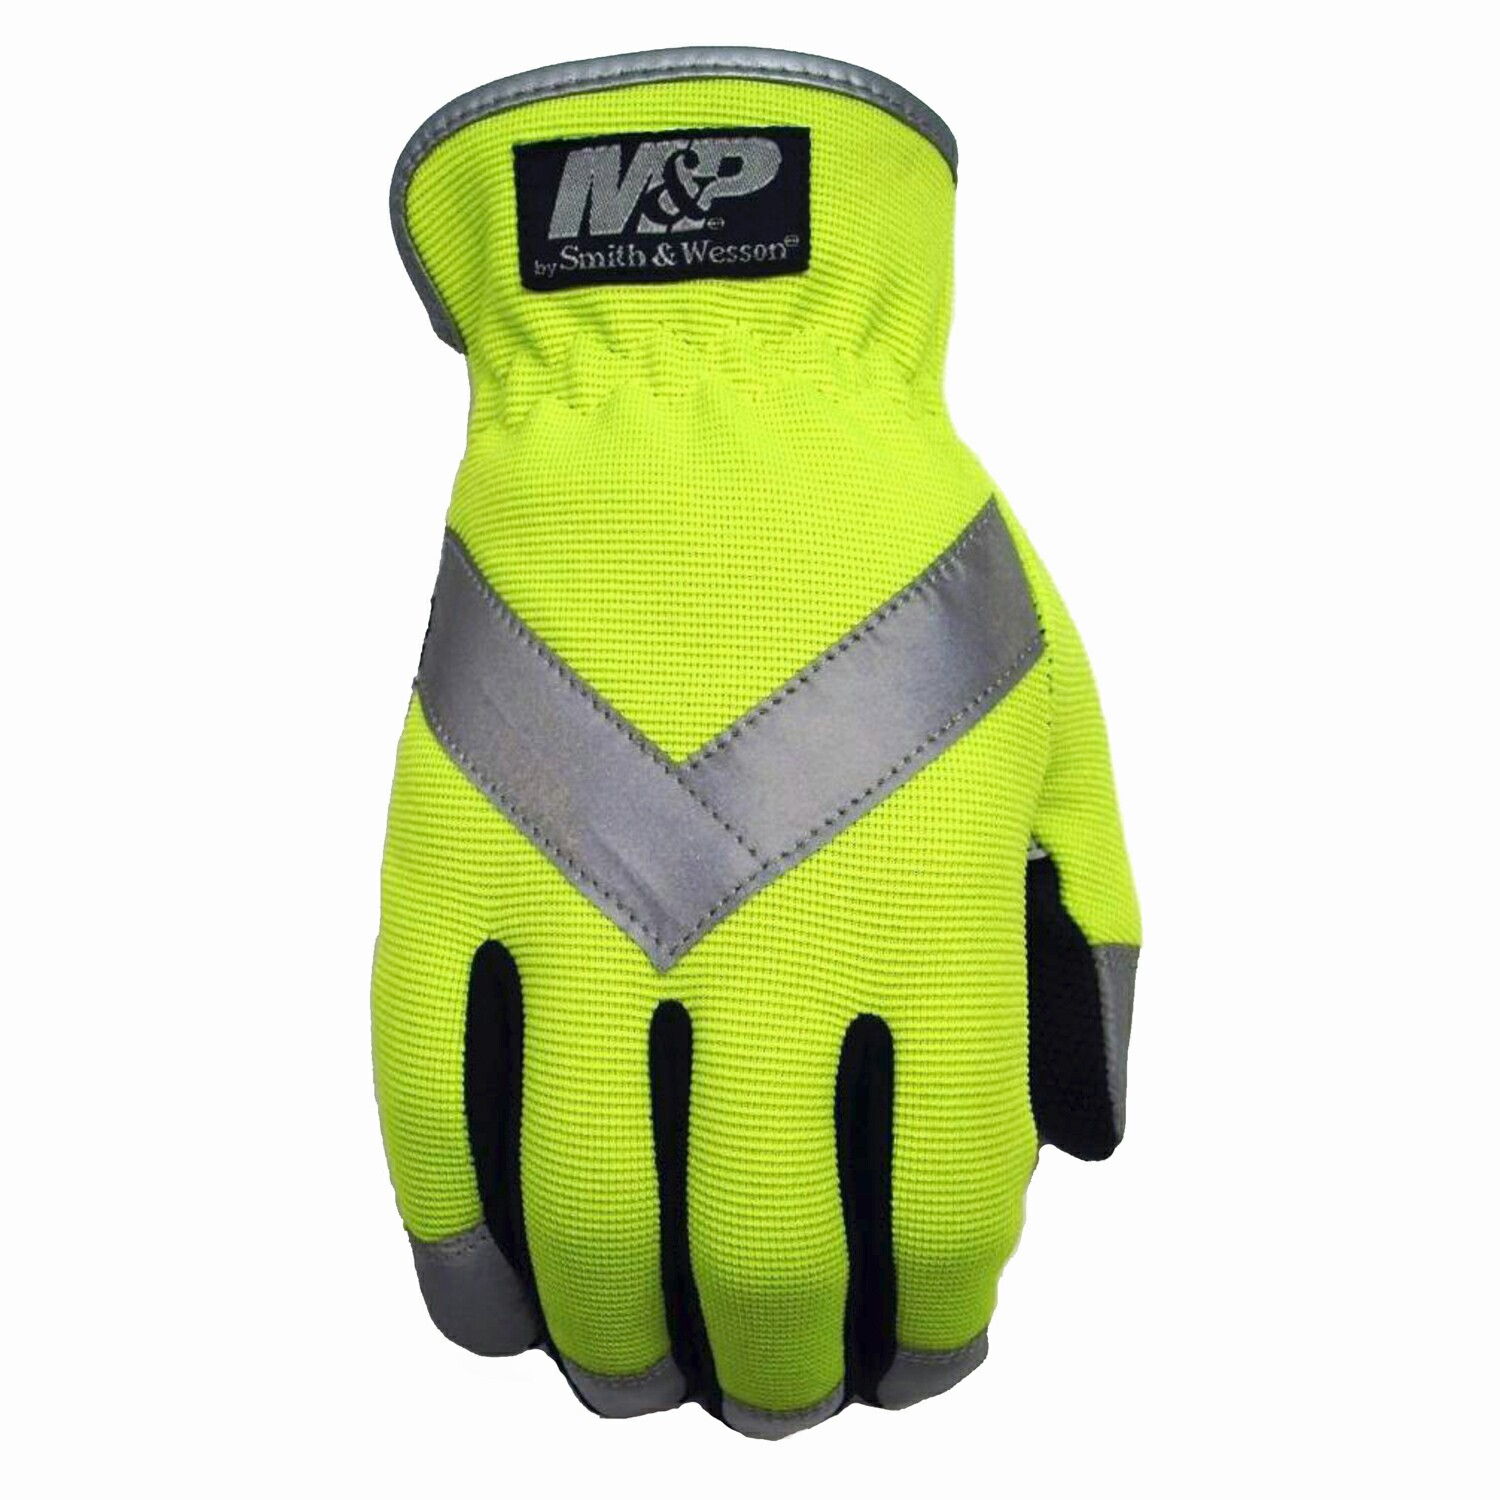 Bionic leather work gloves - Our Hi Vis Gloves Not Only Protect Your Hands They Keep You Safely Visible When Working